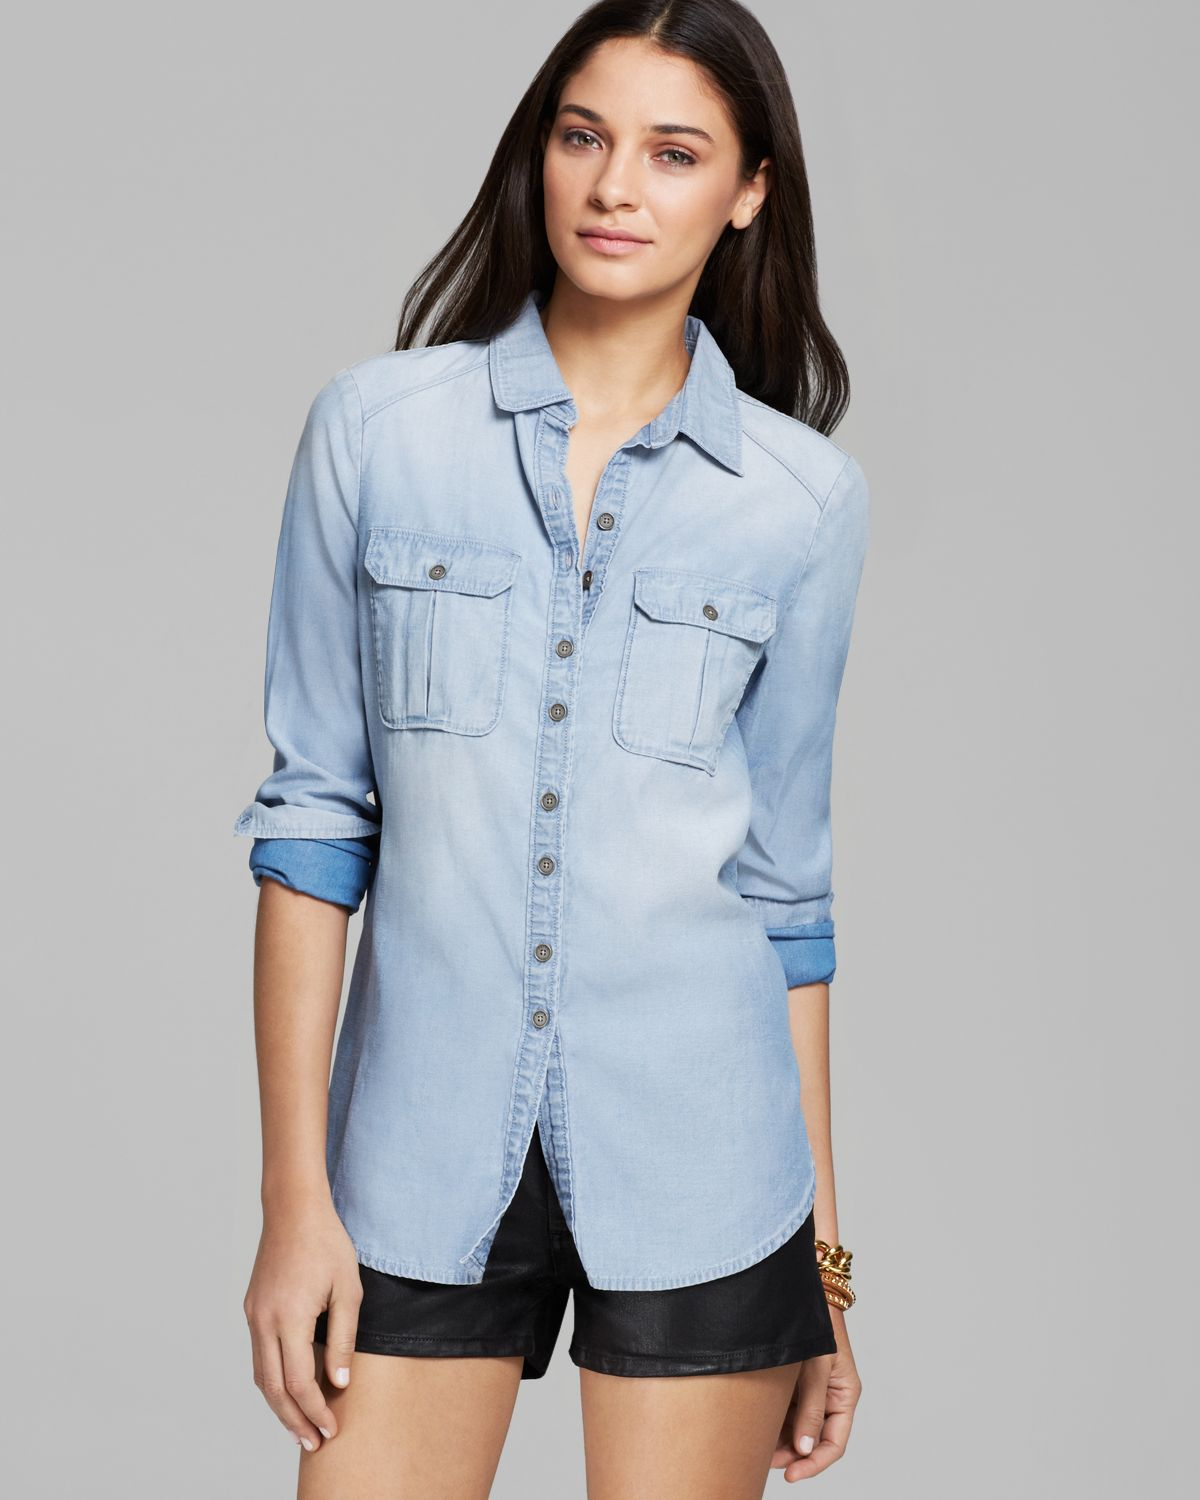 Paige Denim Shirt - Aria Denim | Bloomingdale's